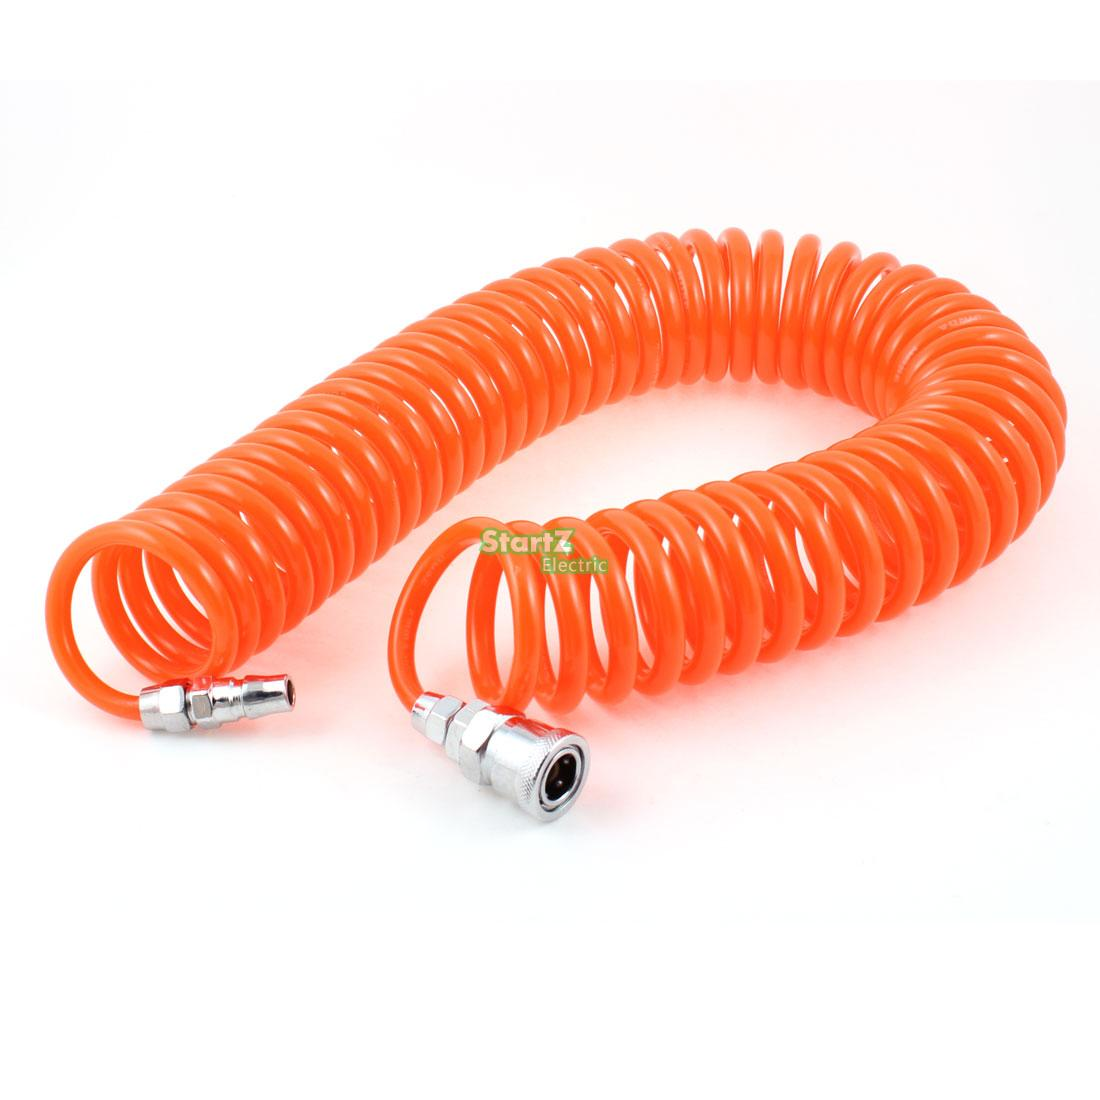 12M 39 Ft 8mm x 5mm Polyurethane PU Recoil Air Compressor Hose Tube Orange Red 6m 19 ft 10mm x 6 5mm polyurethane pu recoil air hose tube orangered